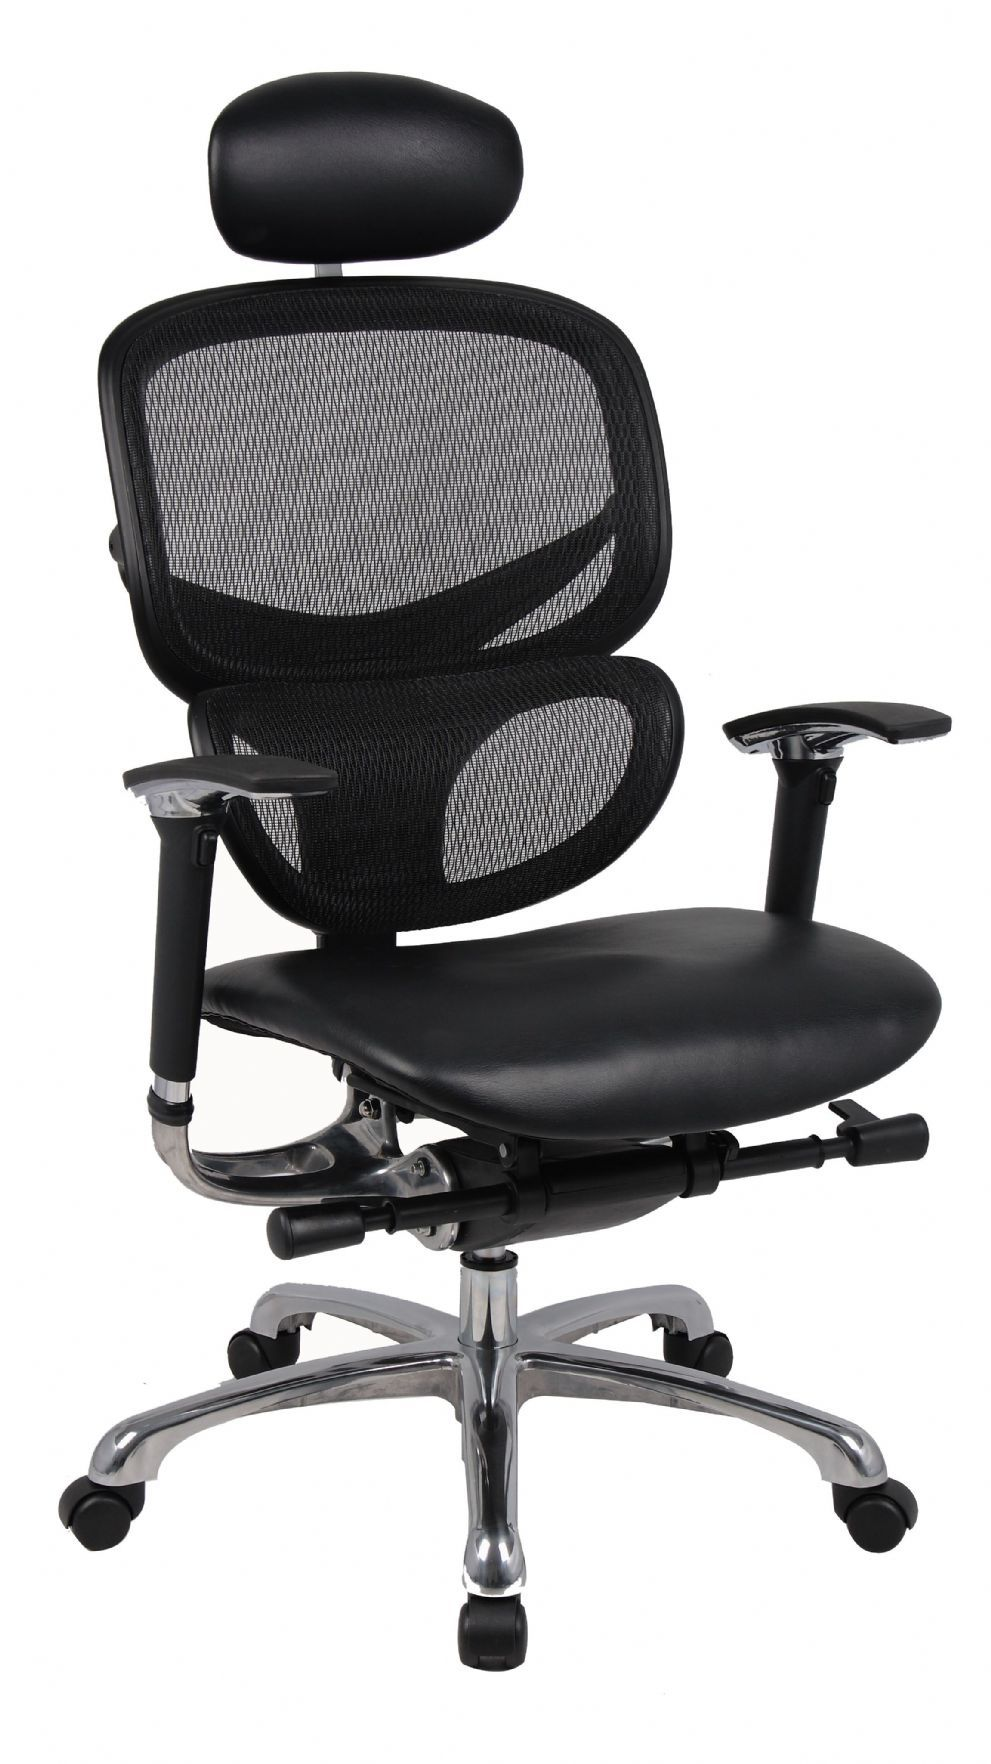 Wave Ergonomic Mesh Office Chair With Leather Seat And